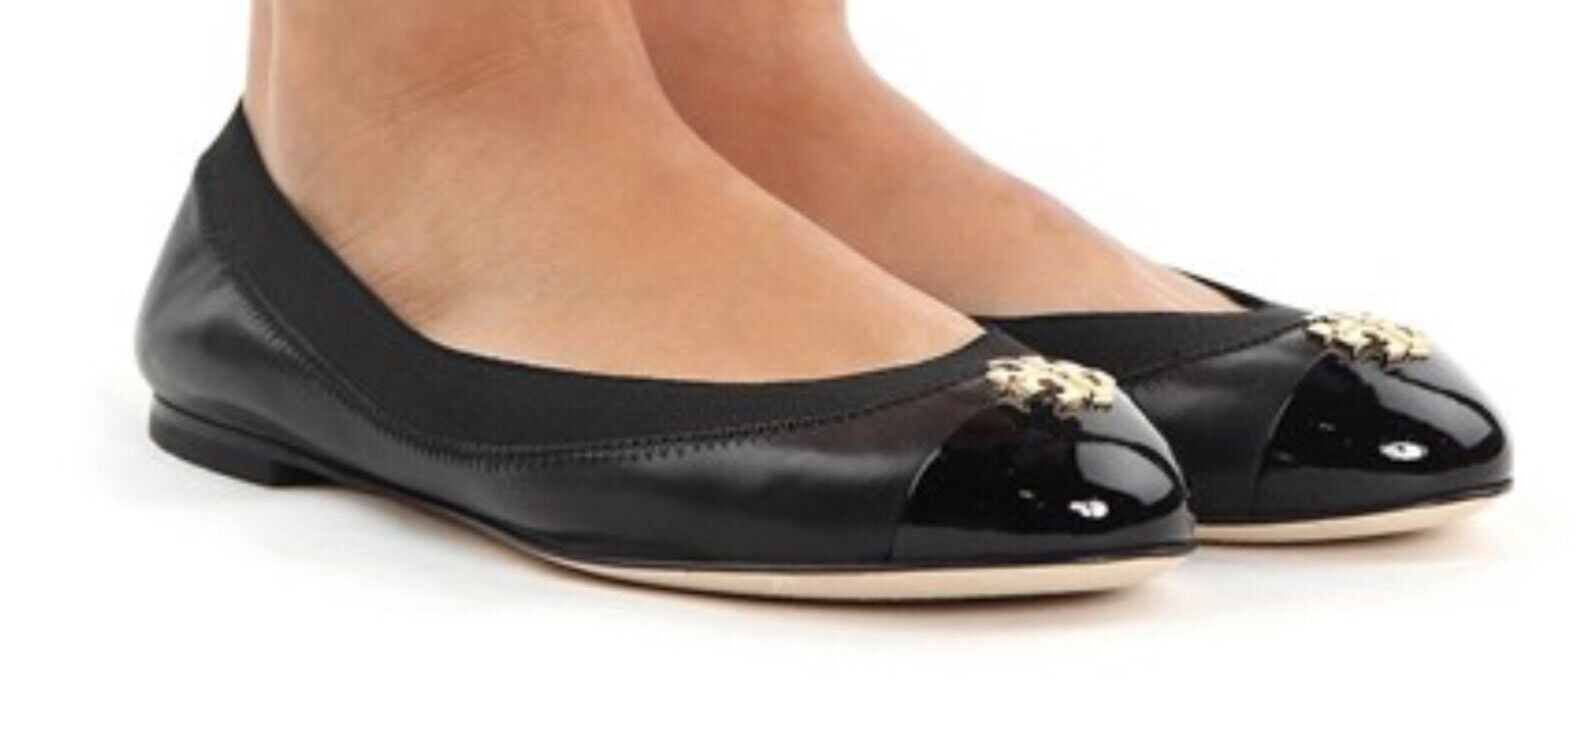 Tory Burch Napa Patent  Leather Jolie Ballet Flat shoes  US S.7.5 Black gold NIB